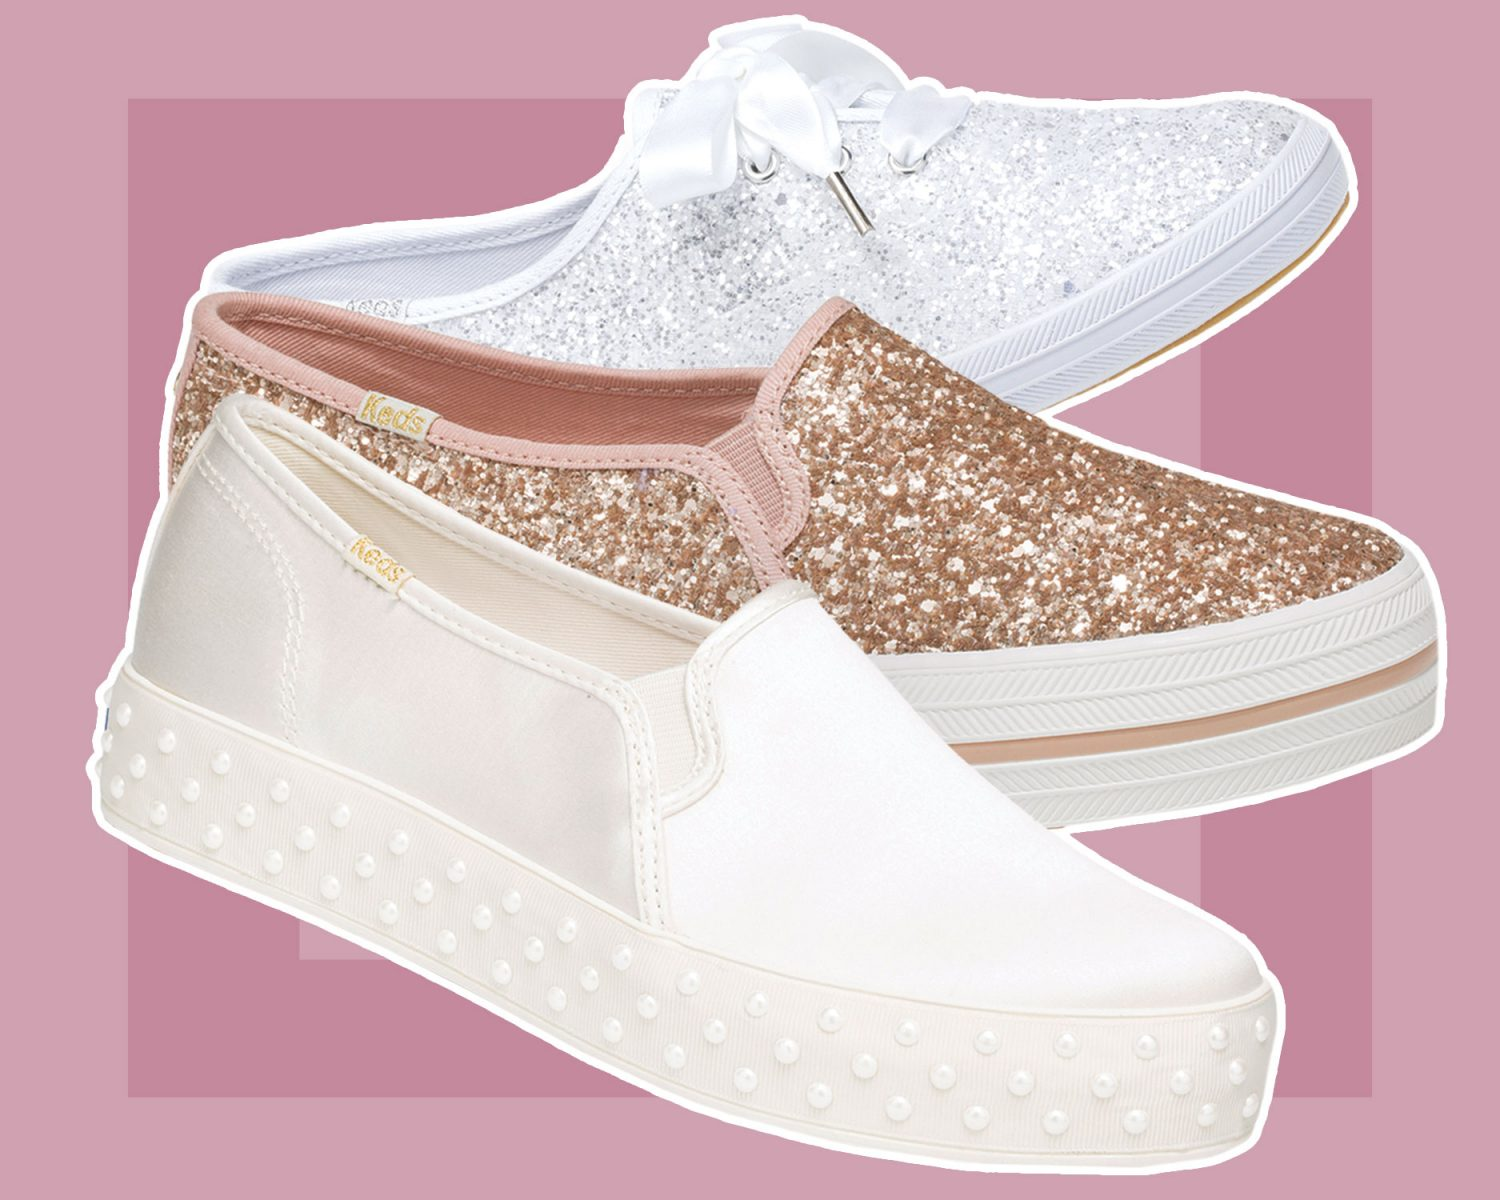 58269f095b37 Kate Spade and Keds Just Dropped Another Wedding Sneaker Collection